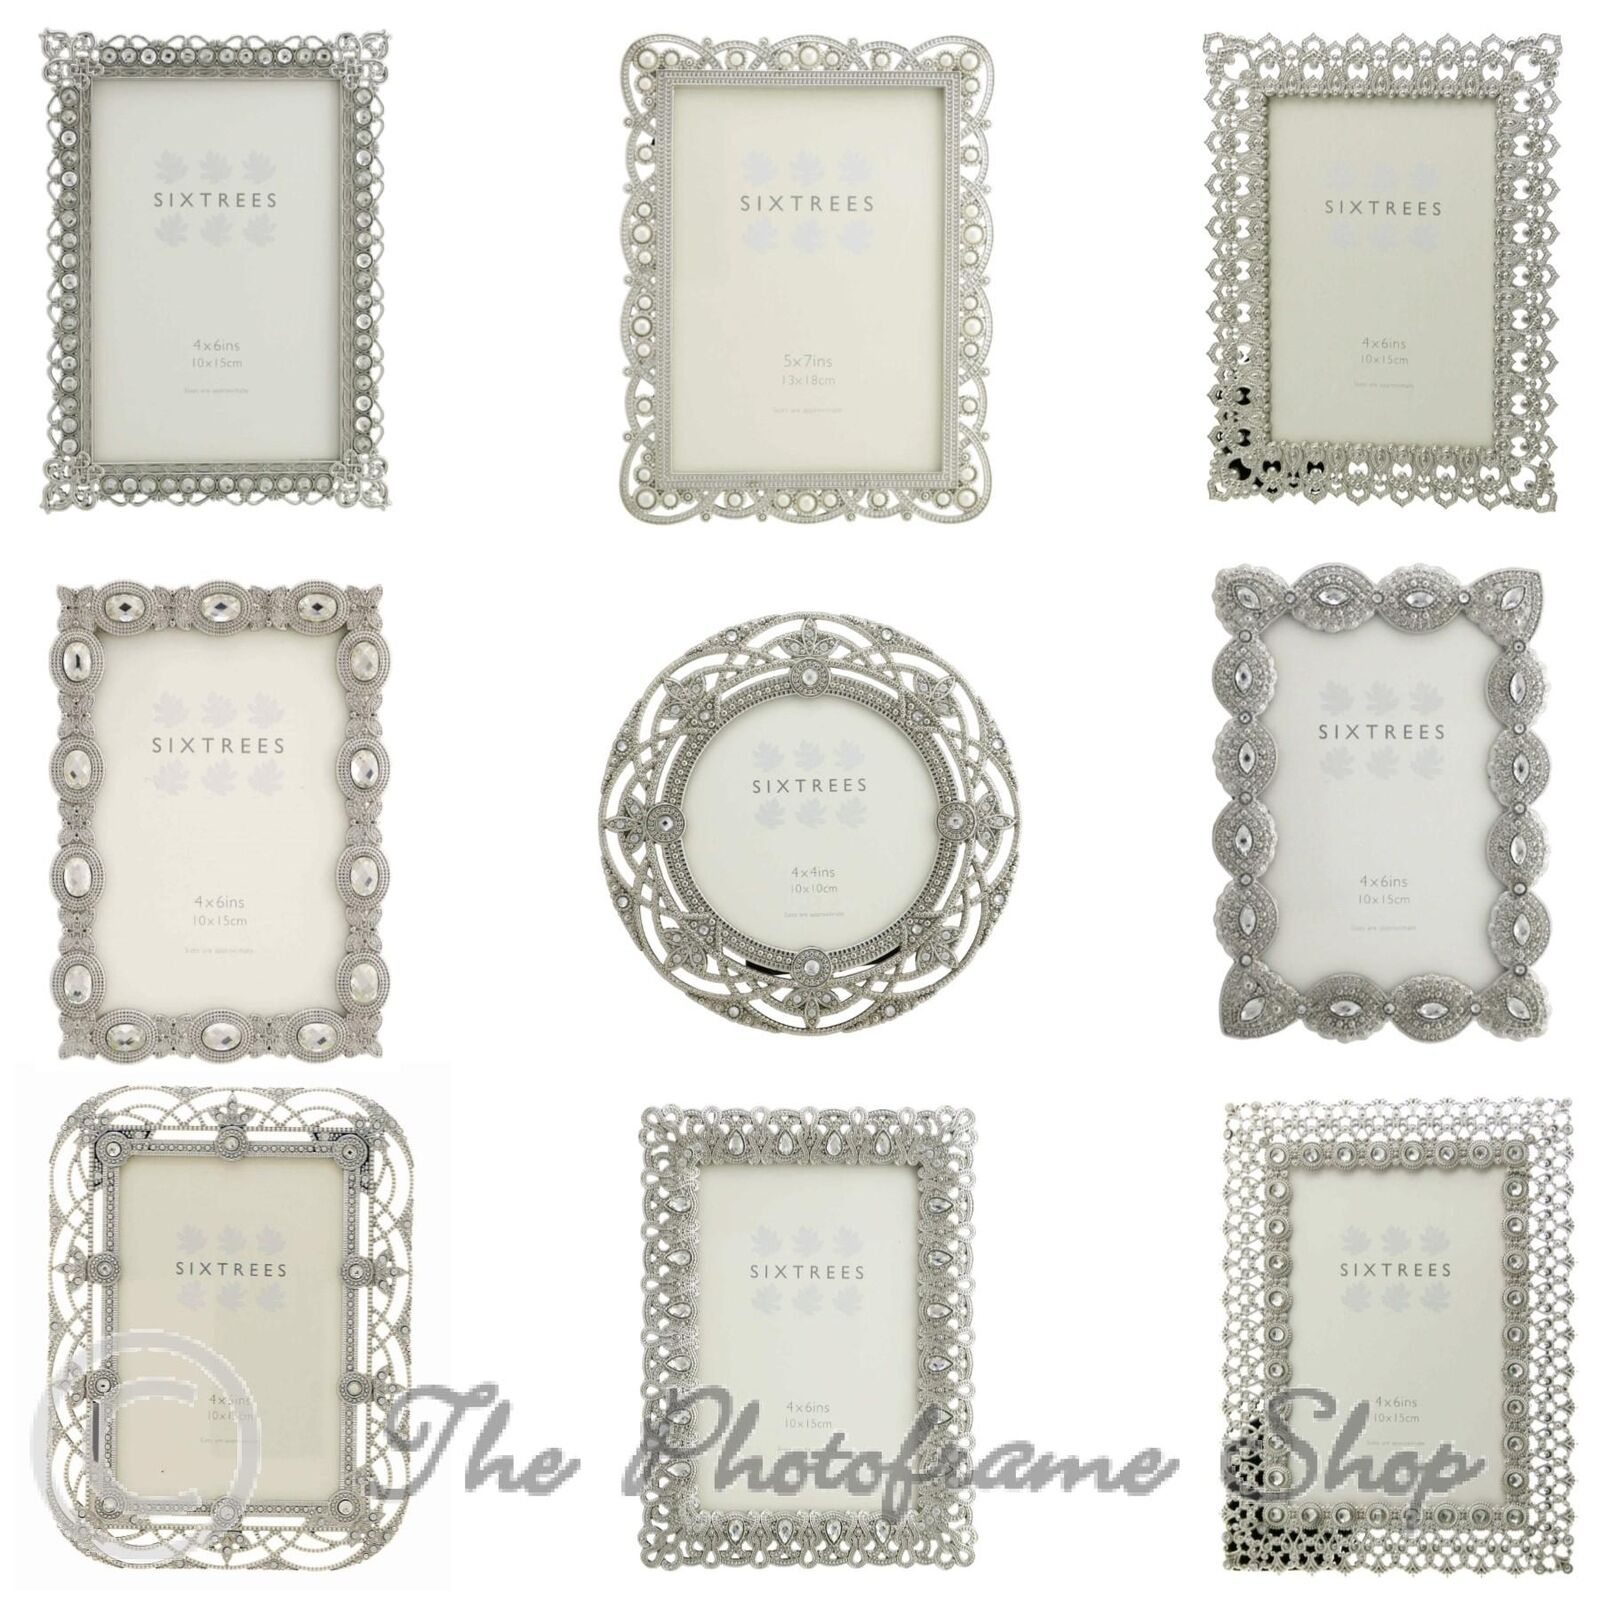 VINTAGE ORNATE SILVER photo frames beads & crystals 4x4, 6x4, 7x5 ...